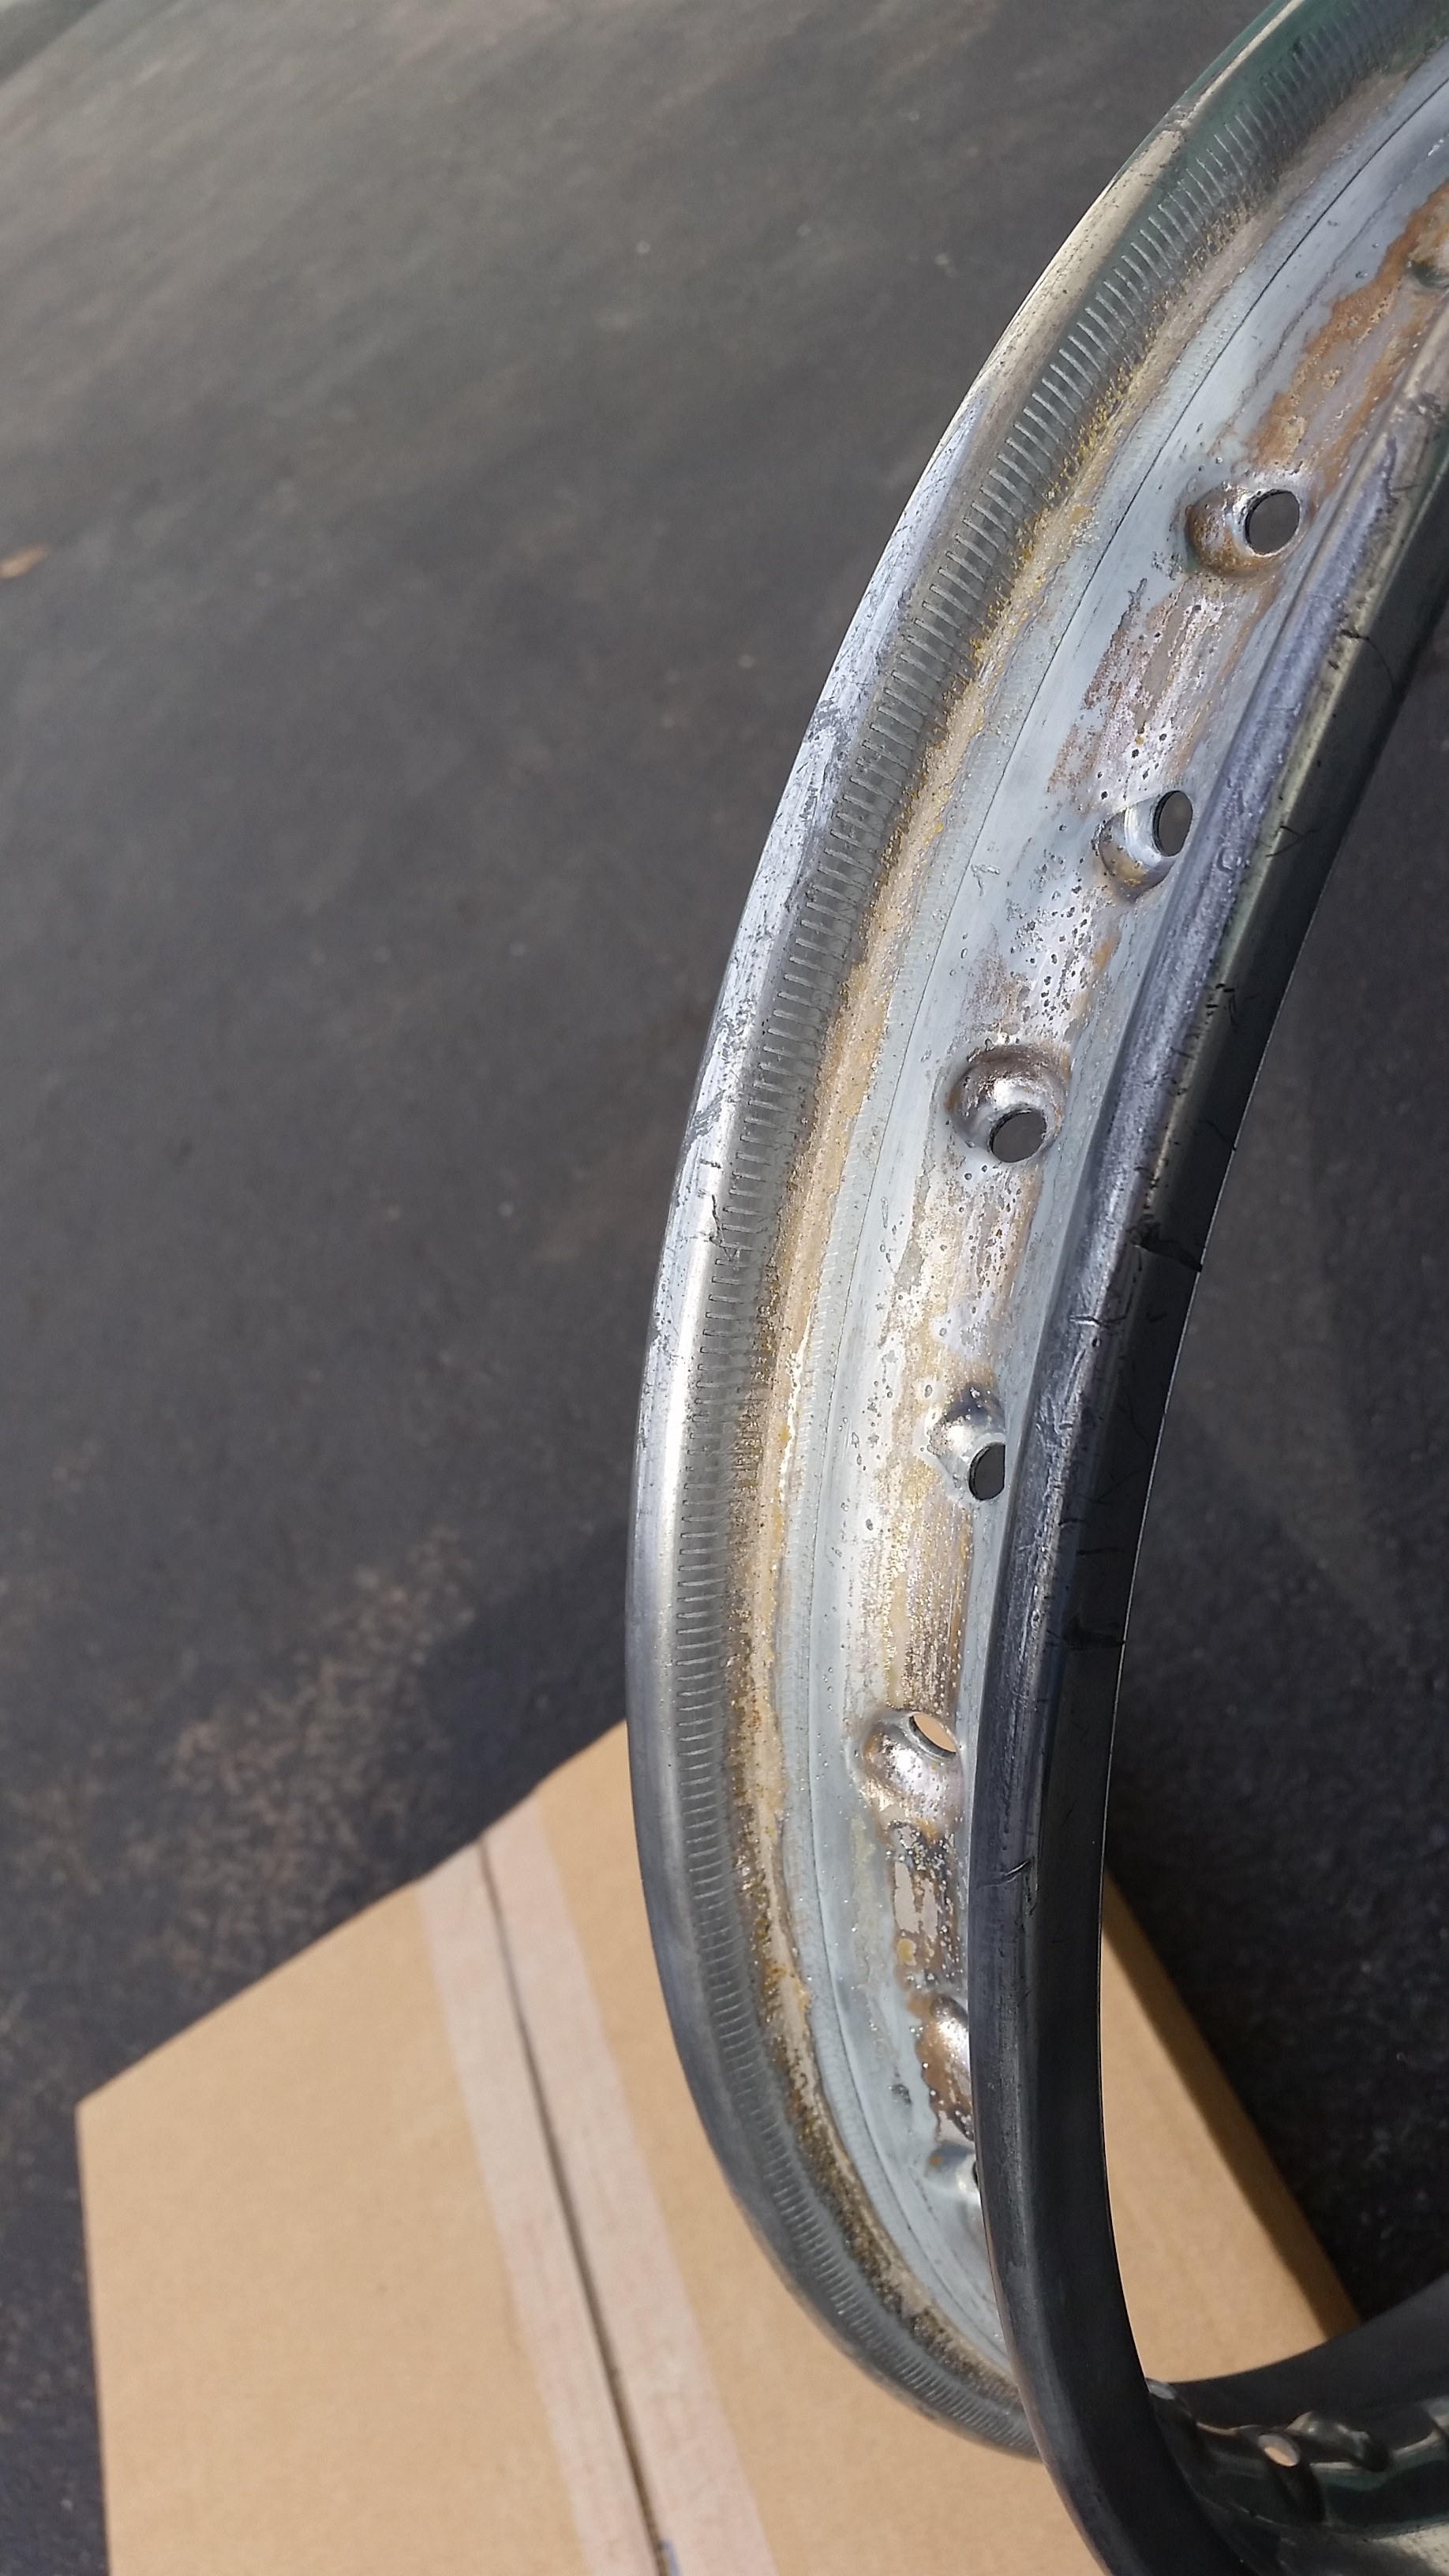 Spoked rims, Rust Removal and DIY Zinc electroplating  - Page 2